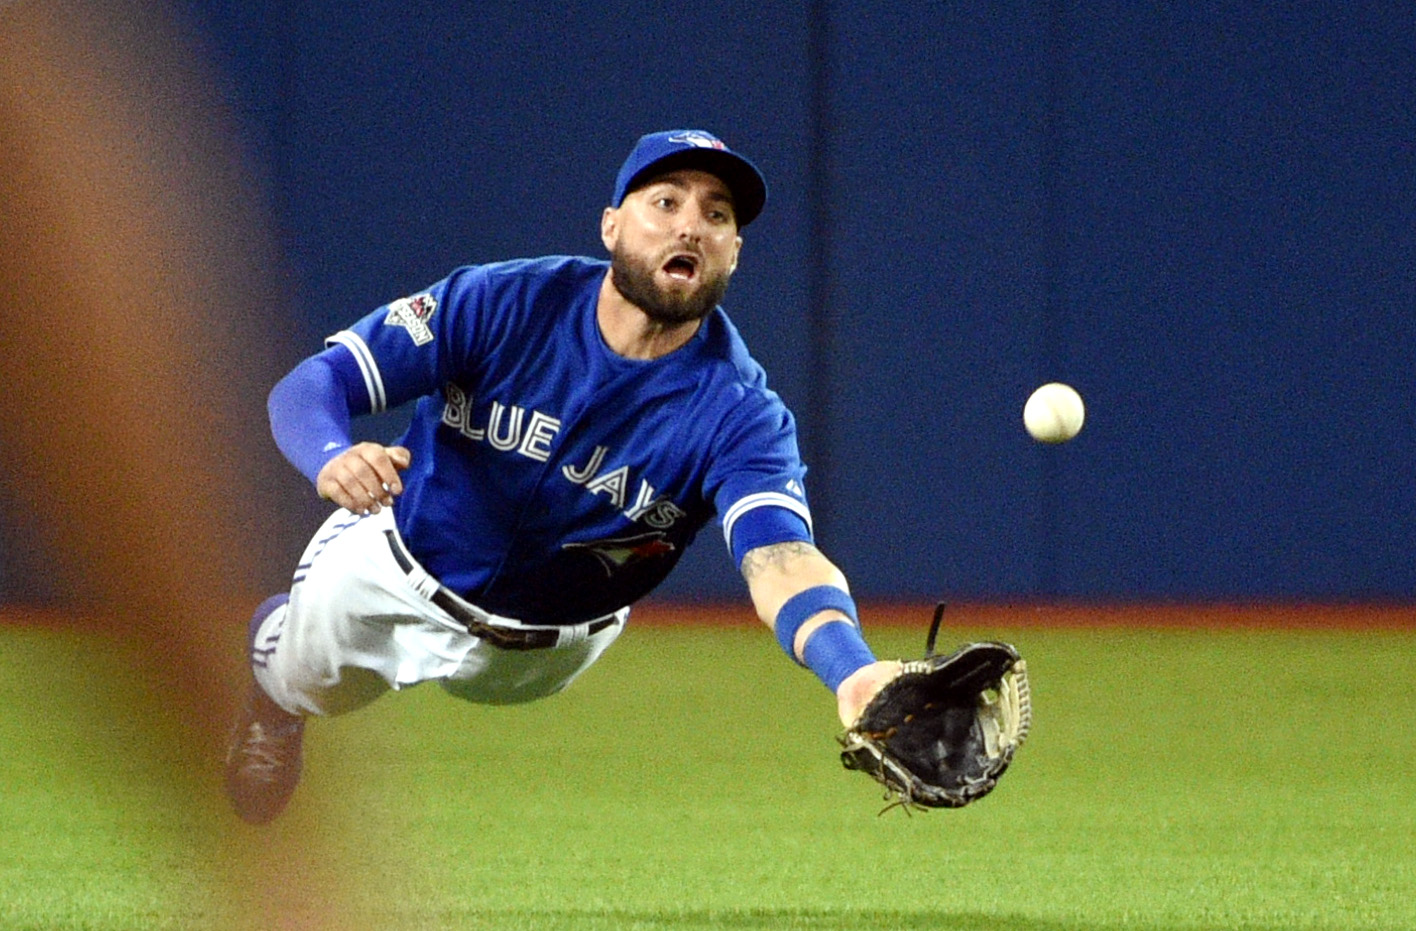 Blue Jays center fielder Kevin Pillar catches a ball hit by Texas Rangers left fielder Josh Hamilton (not pictured) in the fourth inning. (Photo: Nick Turchiaro, USA TODAY Sports)